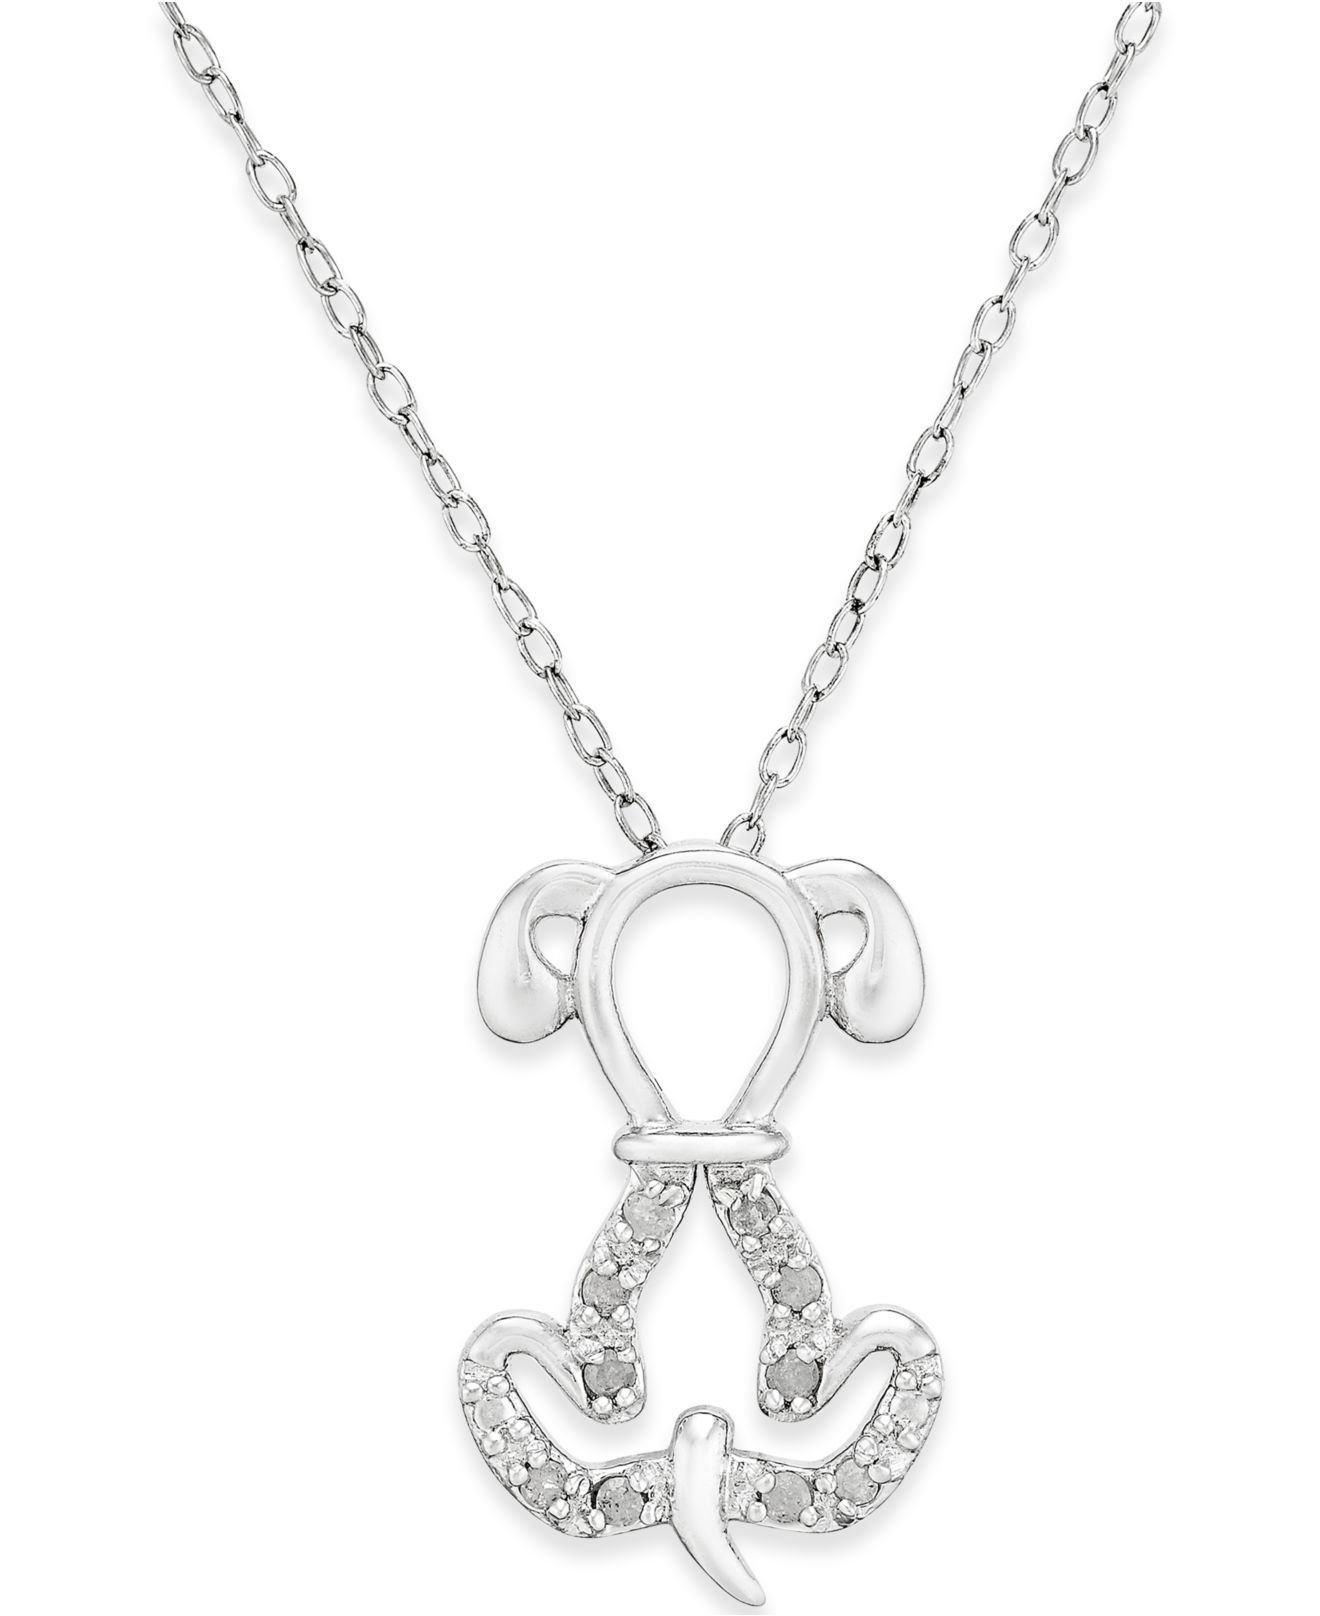 Macy s Diamond Dog Pendant Necklace 1 10 Ct T w In Sterling